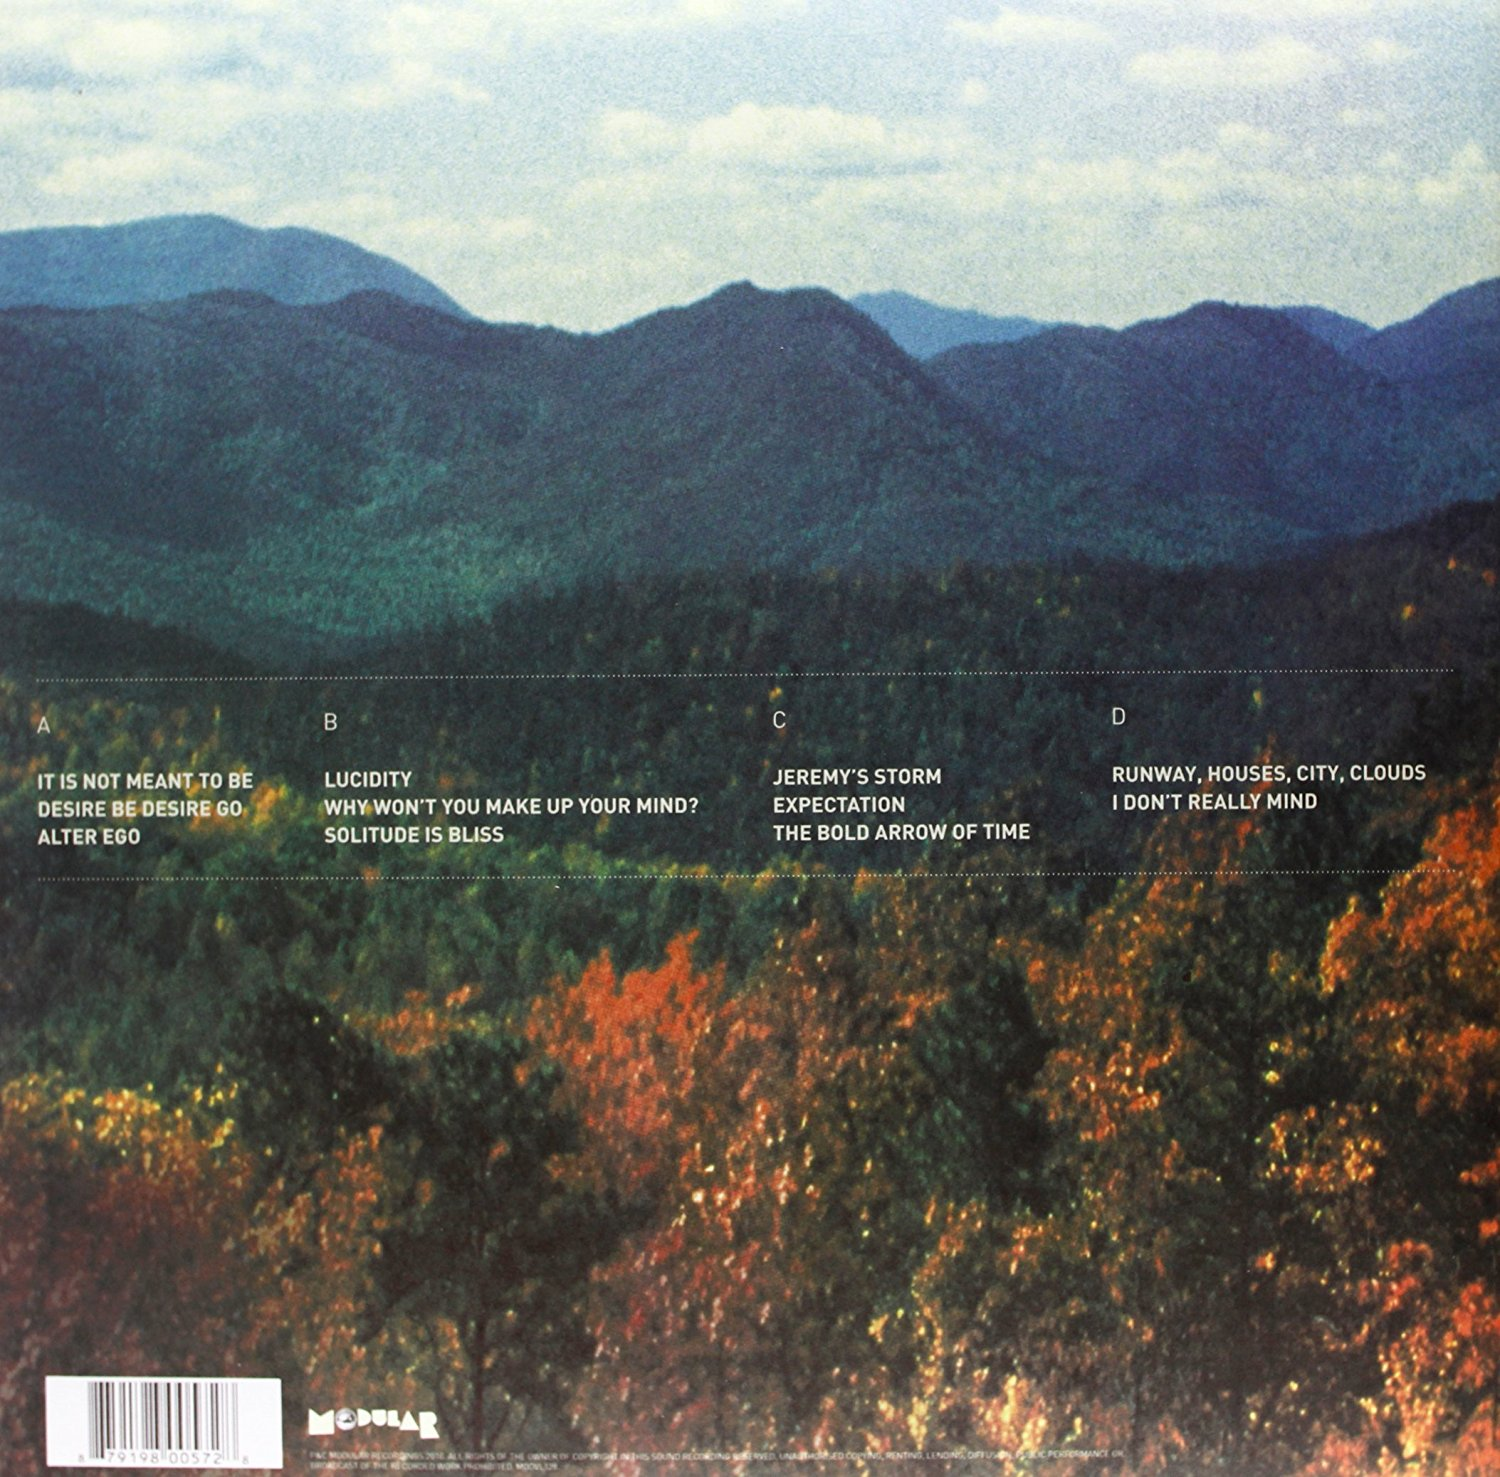 f03e95a461b0 InnerSpeaker [2 LP], Ships in Certified Frustration-Free Packaging By Tame  Impala Format: Vinyl - Walmart.com